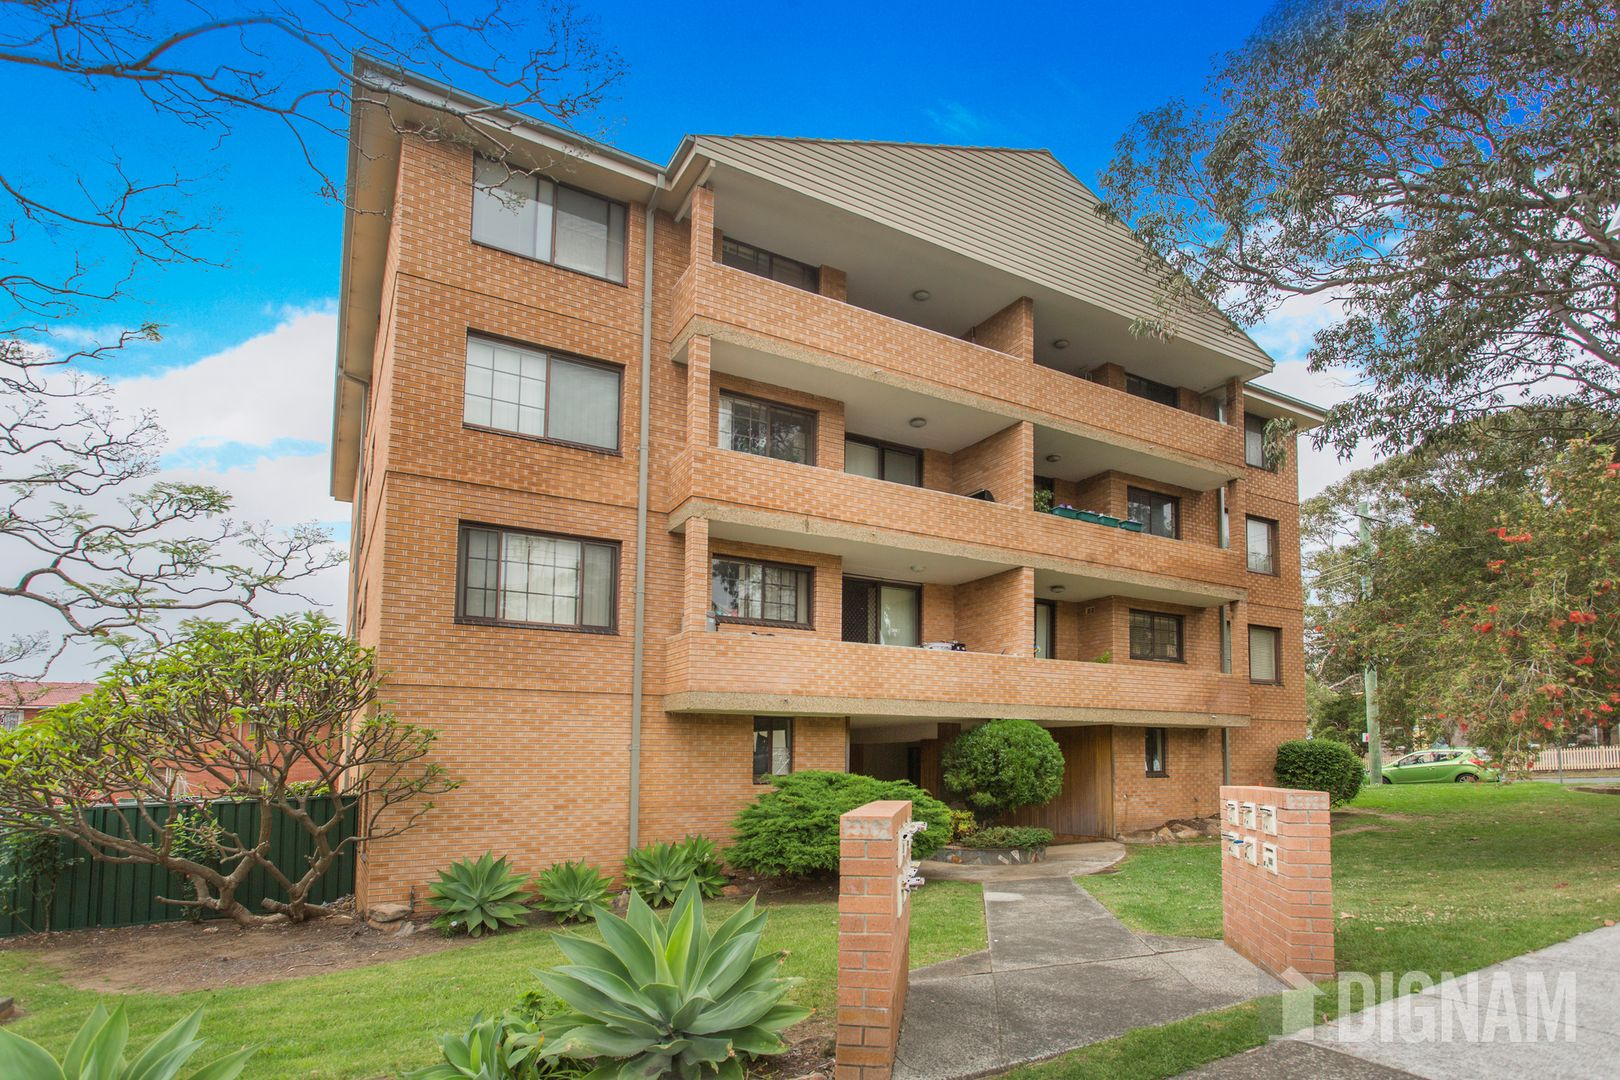 8/70-74 Smith Street, Wollongong NSW 2500, Image 0